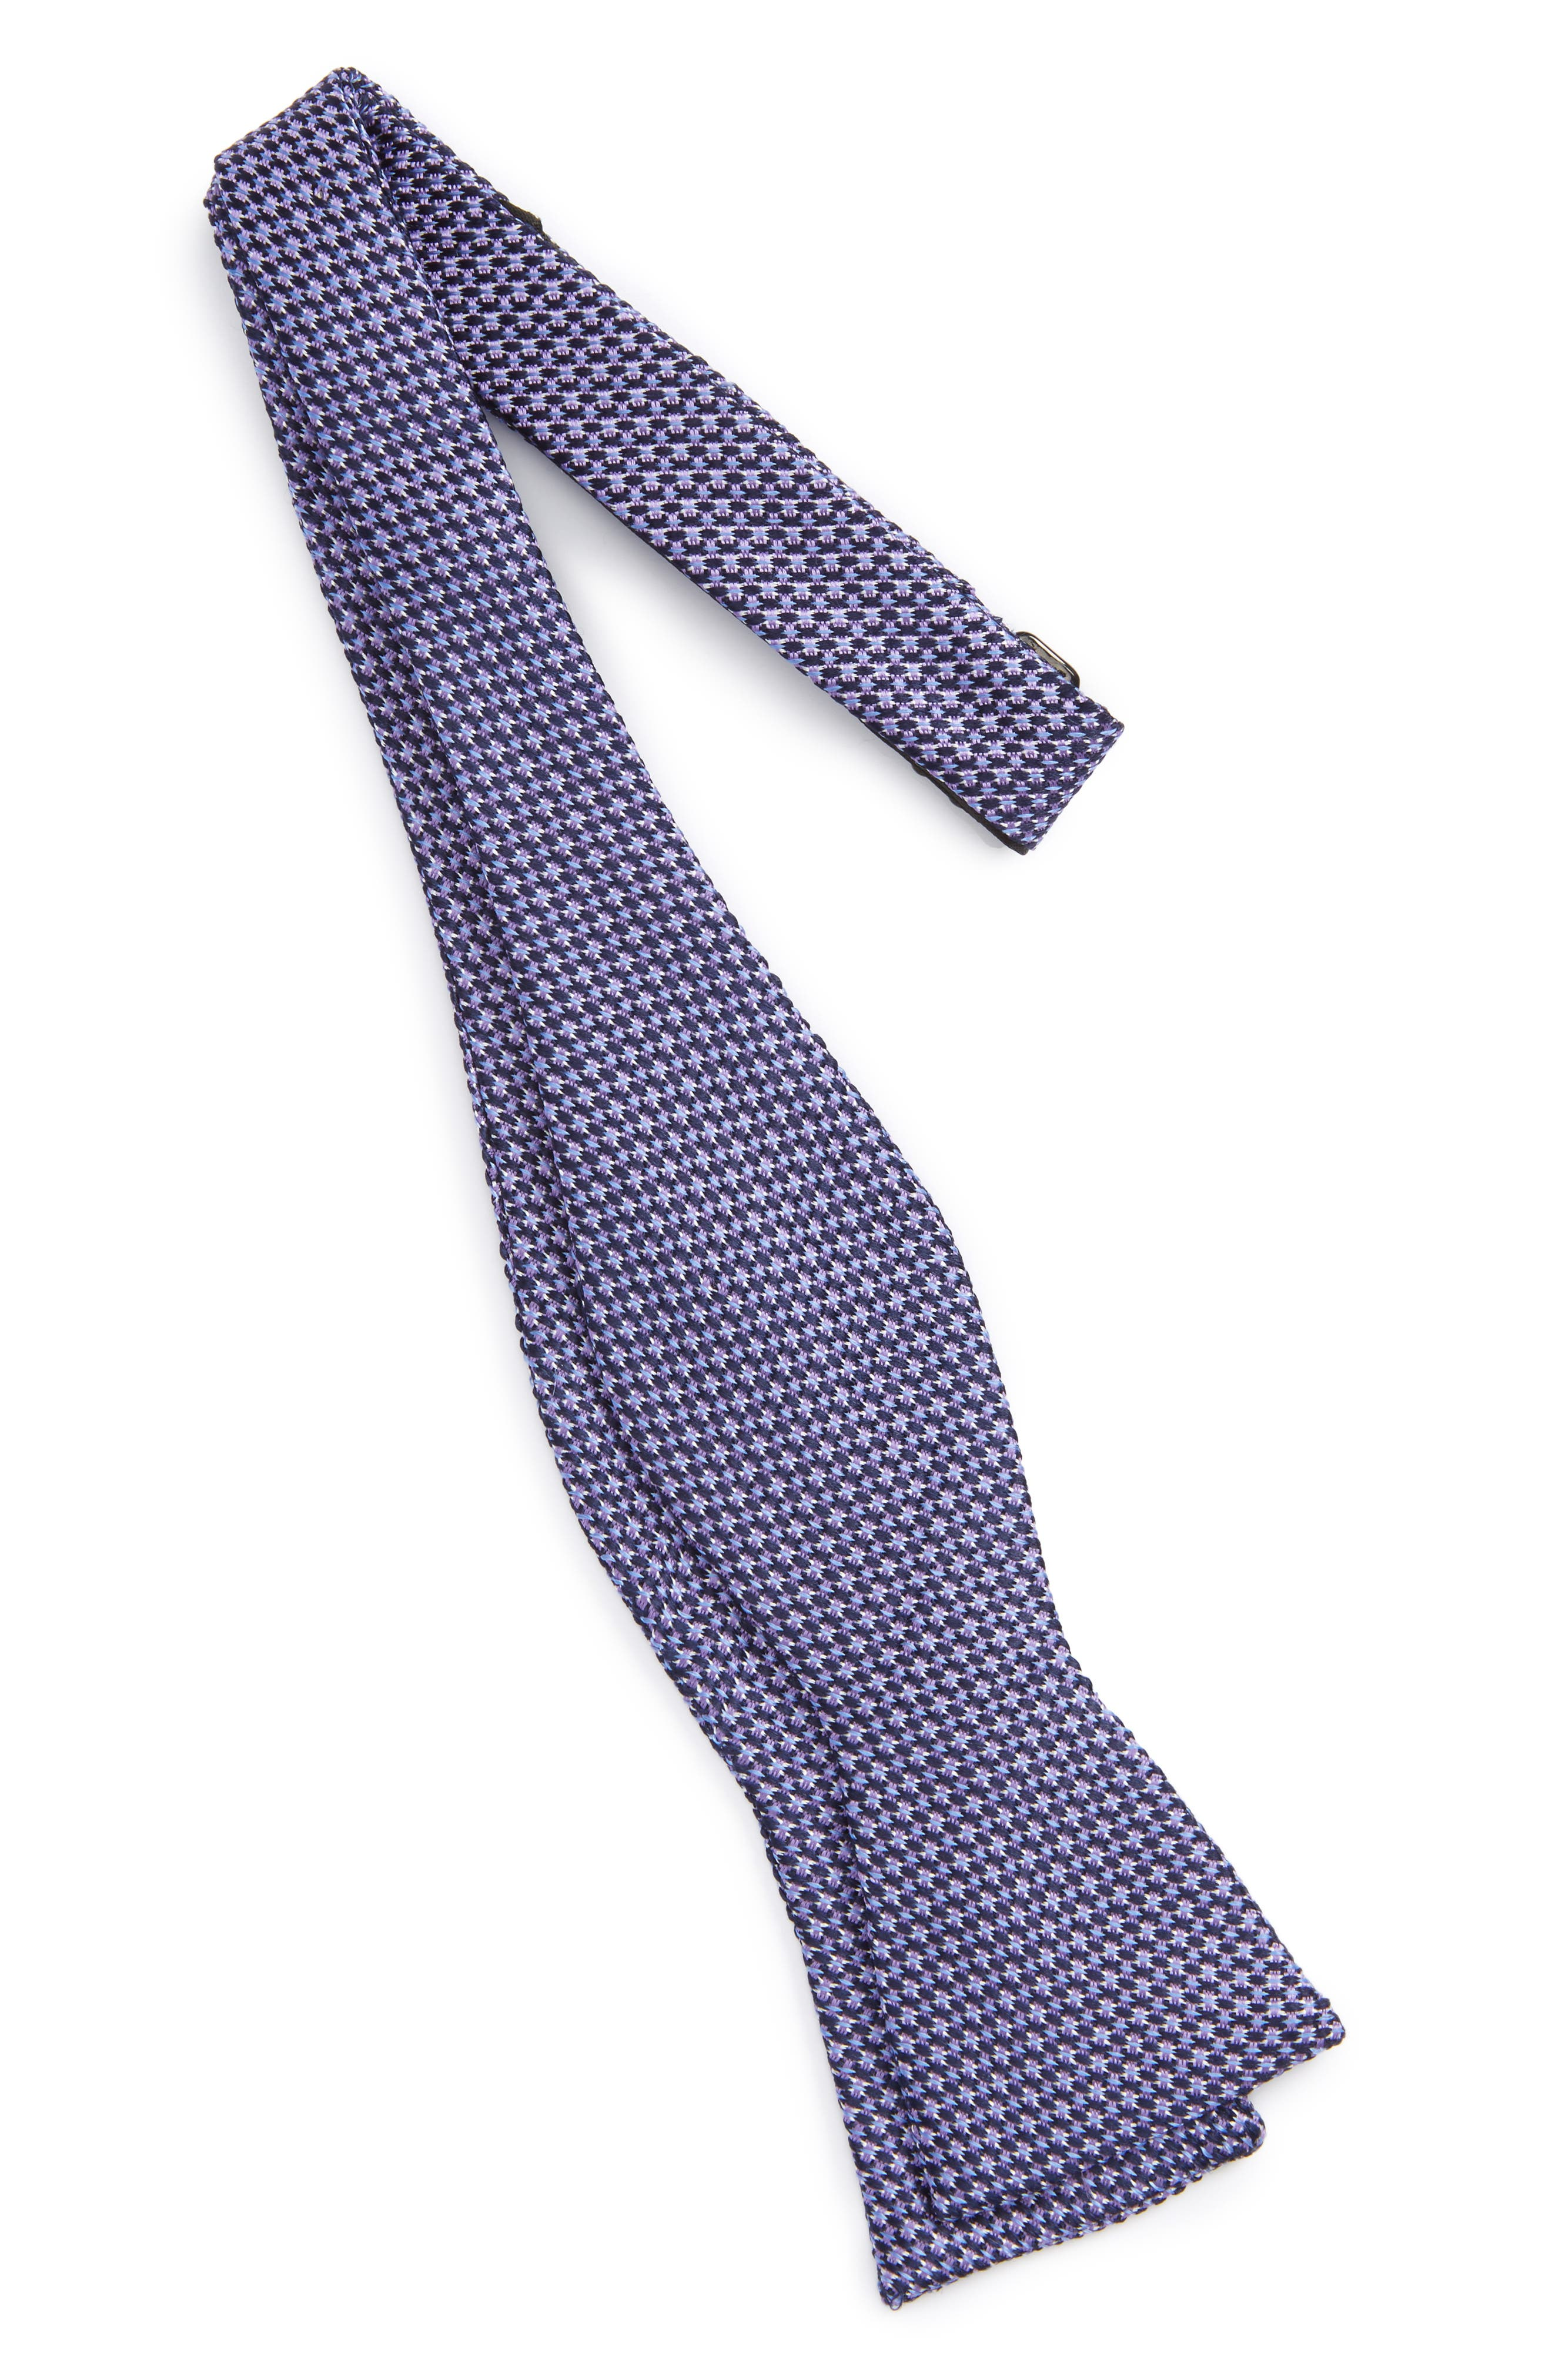 Alternate Image 1 Selected - Calibrate Textured Silk Bow Tie